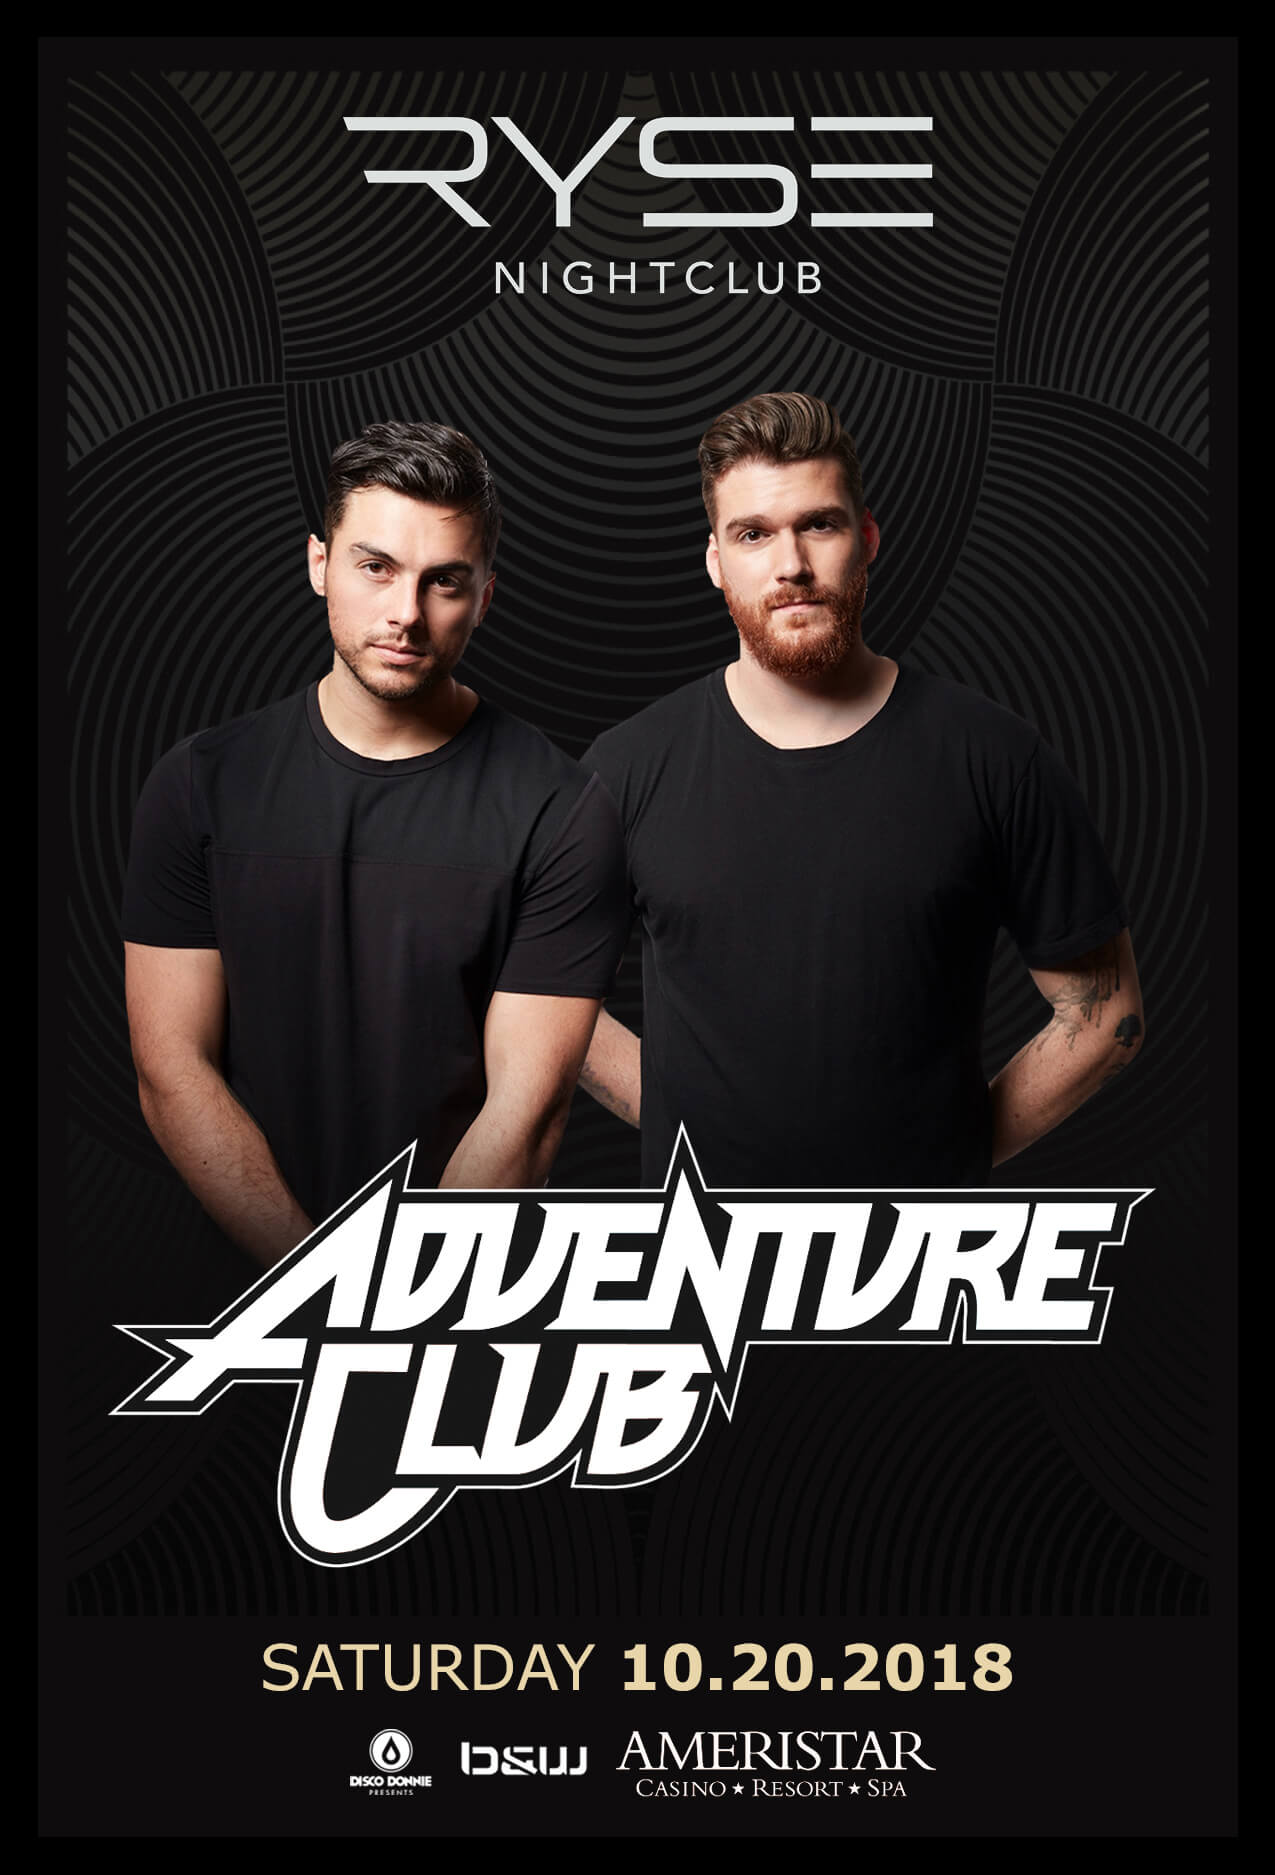 Adventure Club in St Charles